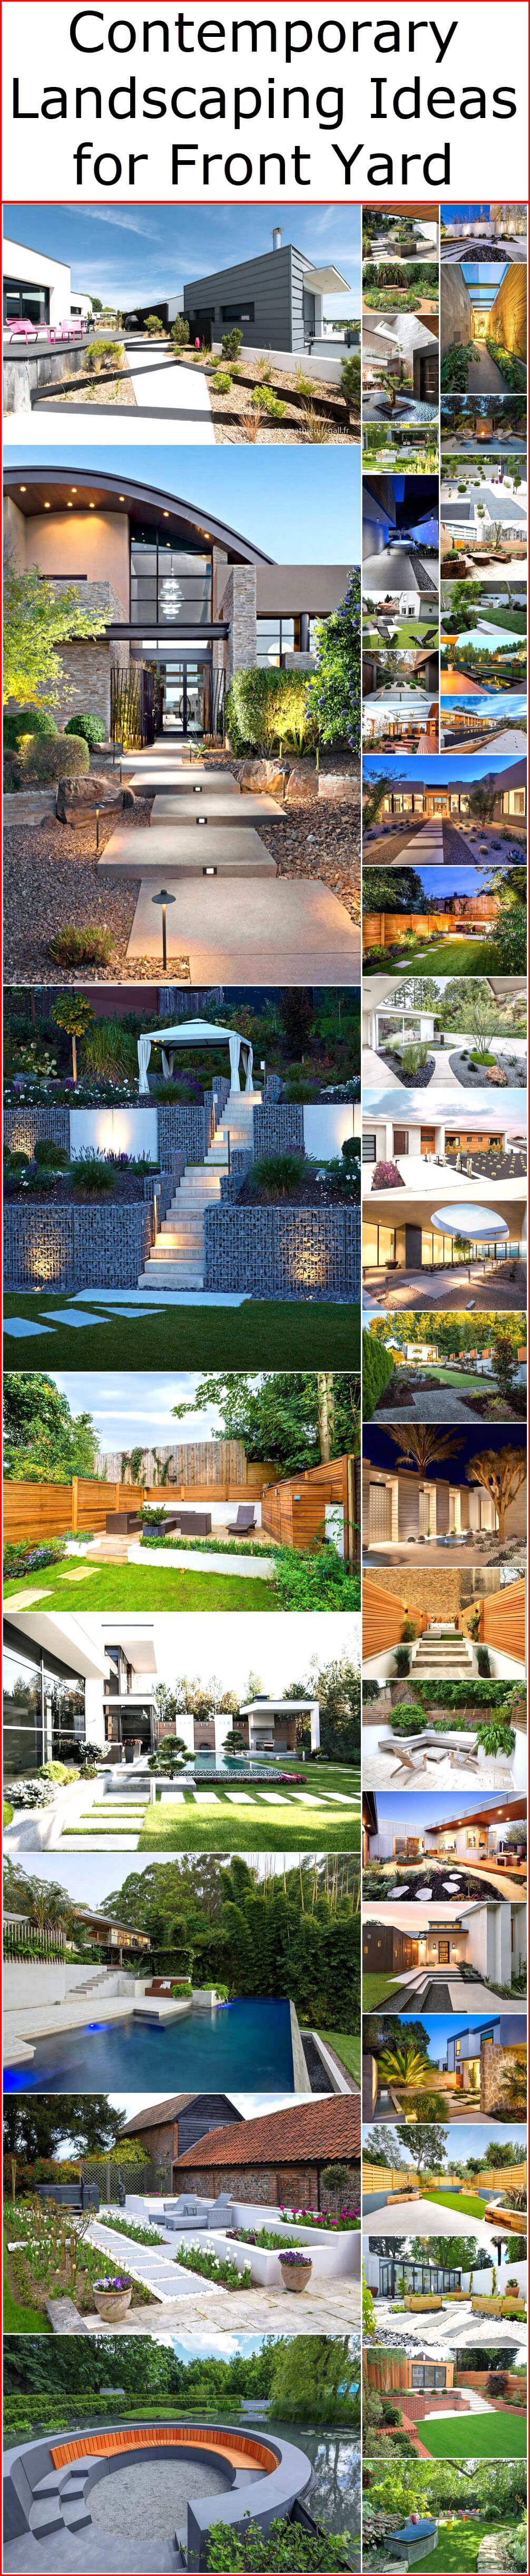 Contemporary Landscaping Ideas for front yard